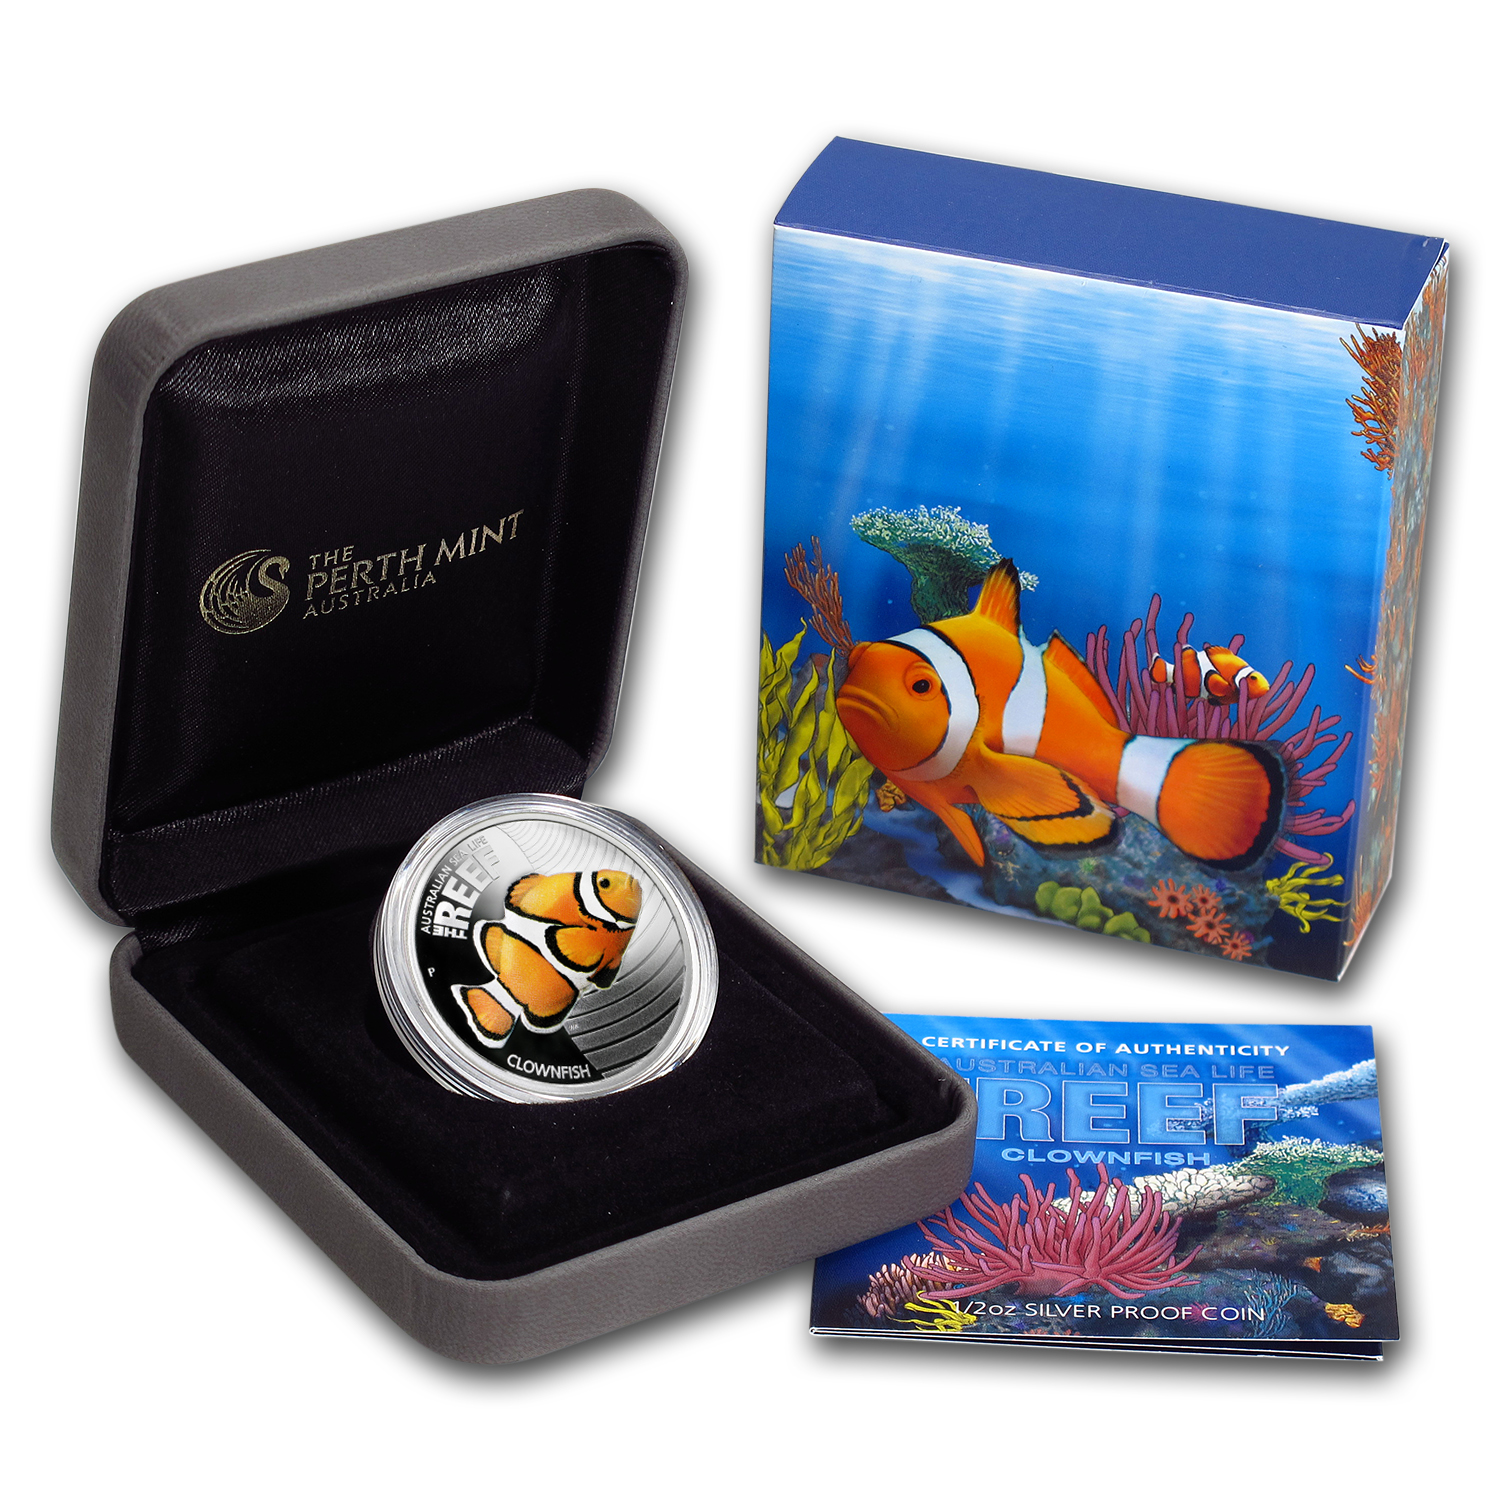 2010 1/2 oz Proof Silver Clownfish Coin - Sea Life I Series